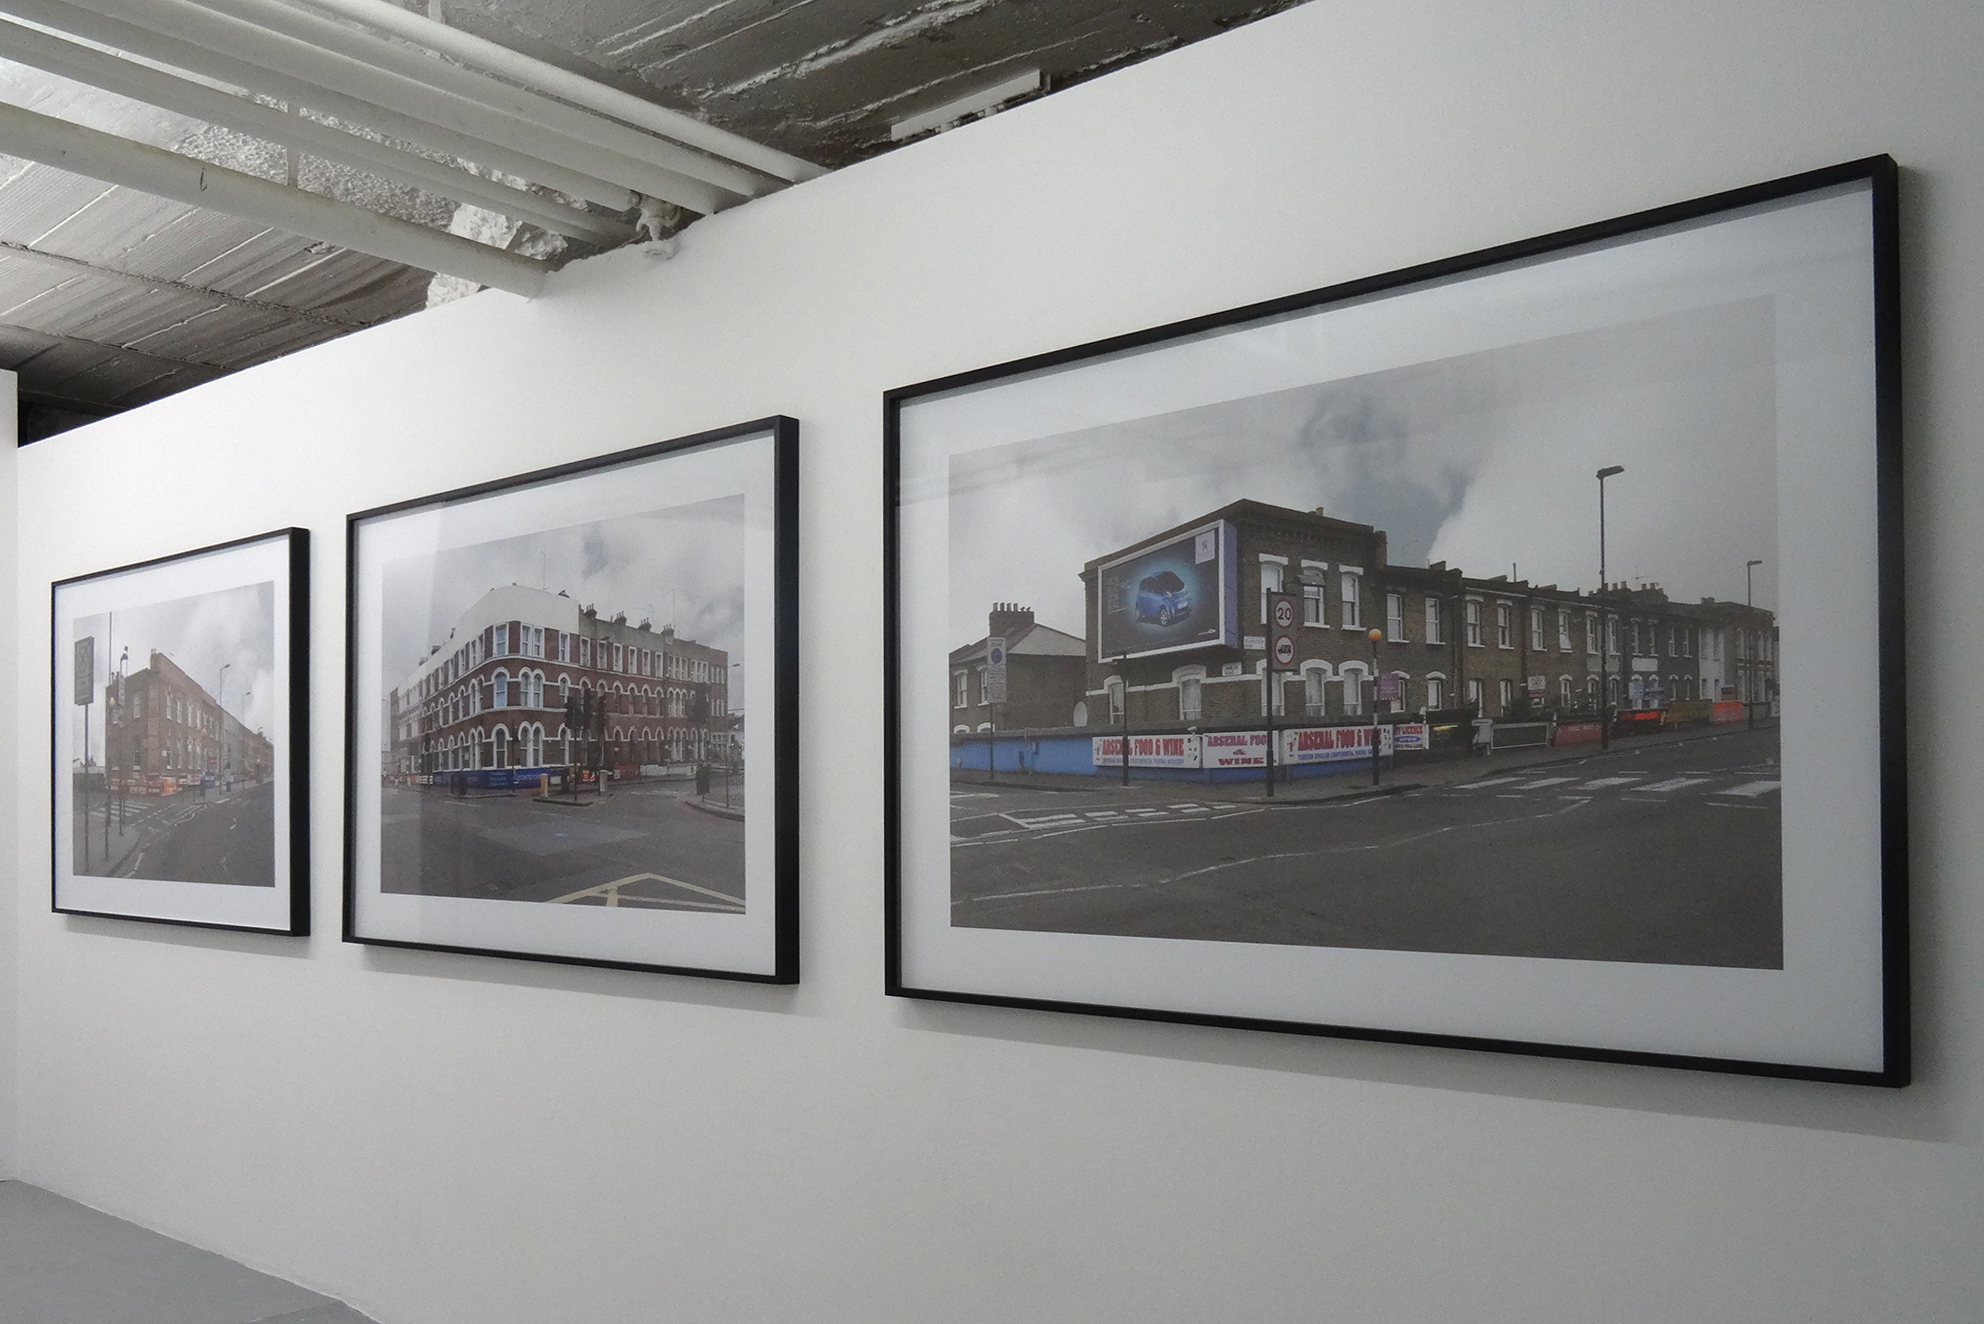 Finsbury, Blackstock Road, London, series of 3 photographs, inkjet print / black wooden frame and glass, 104 x 150 x 4 cm, 2011, © A.Satus